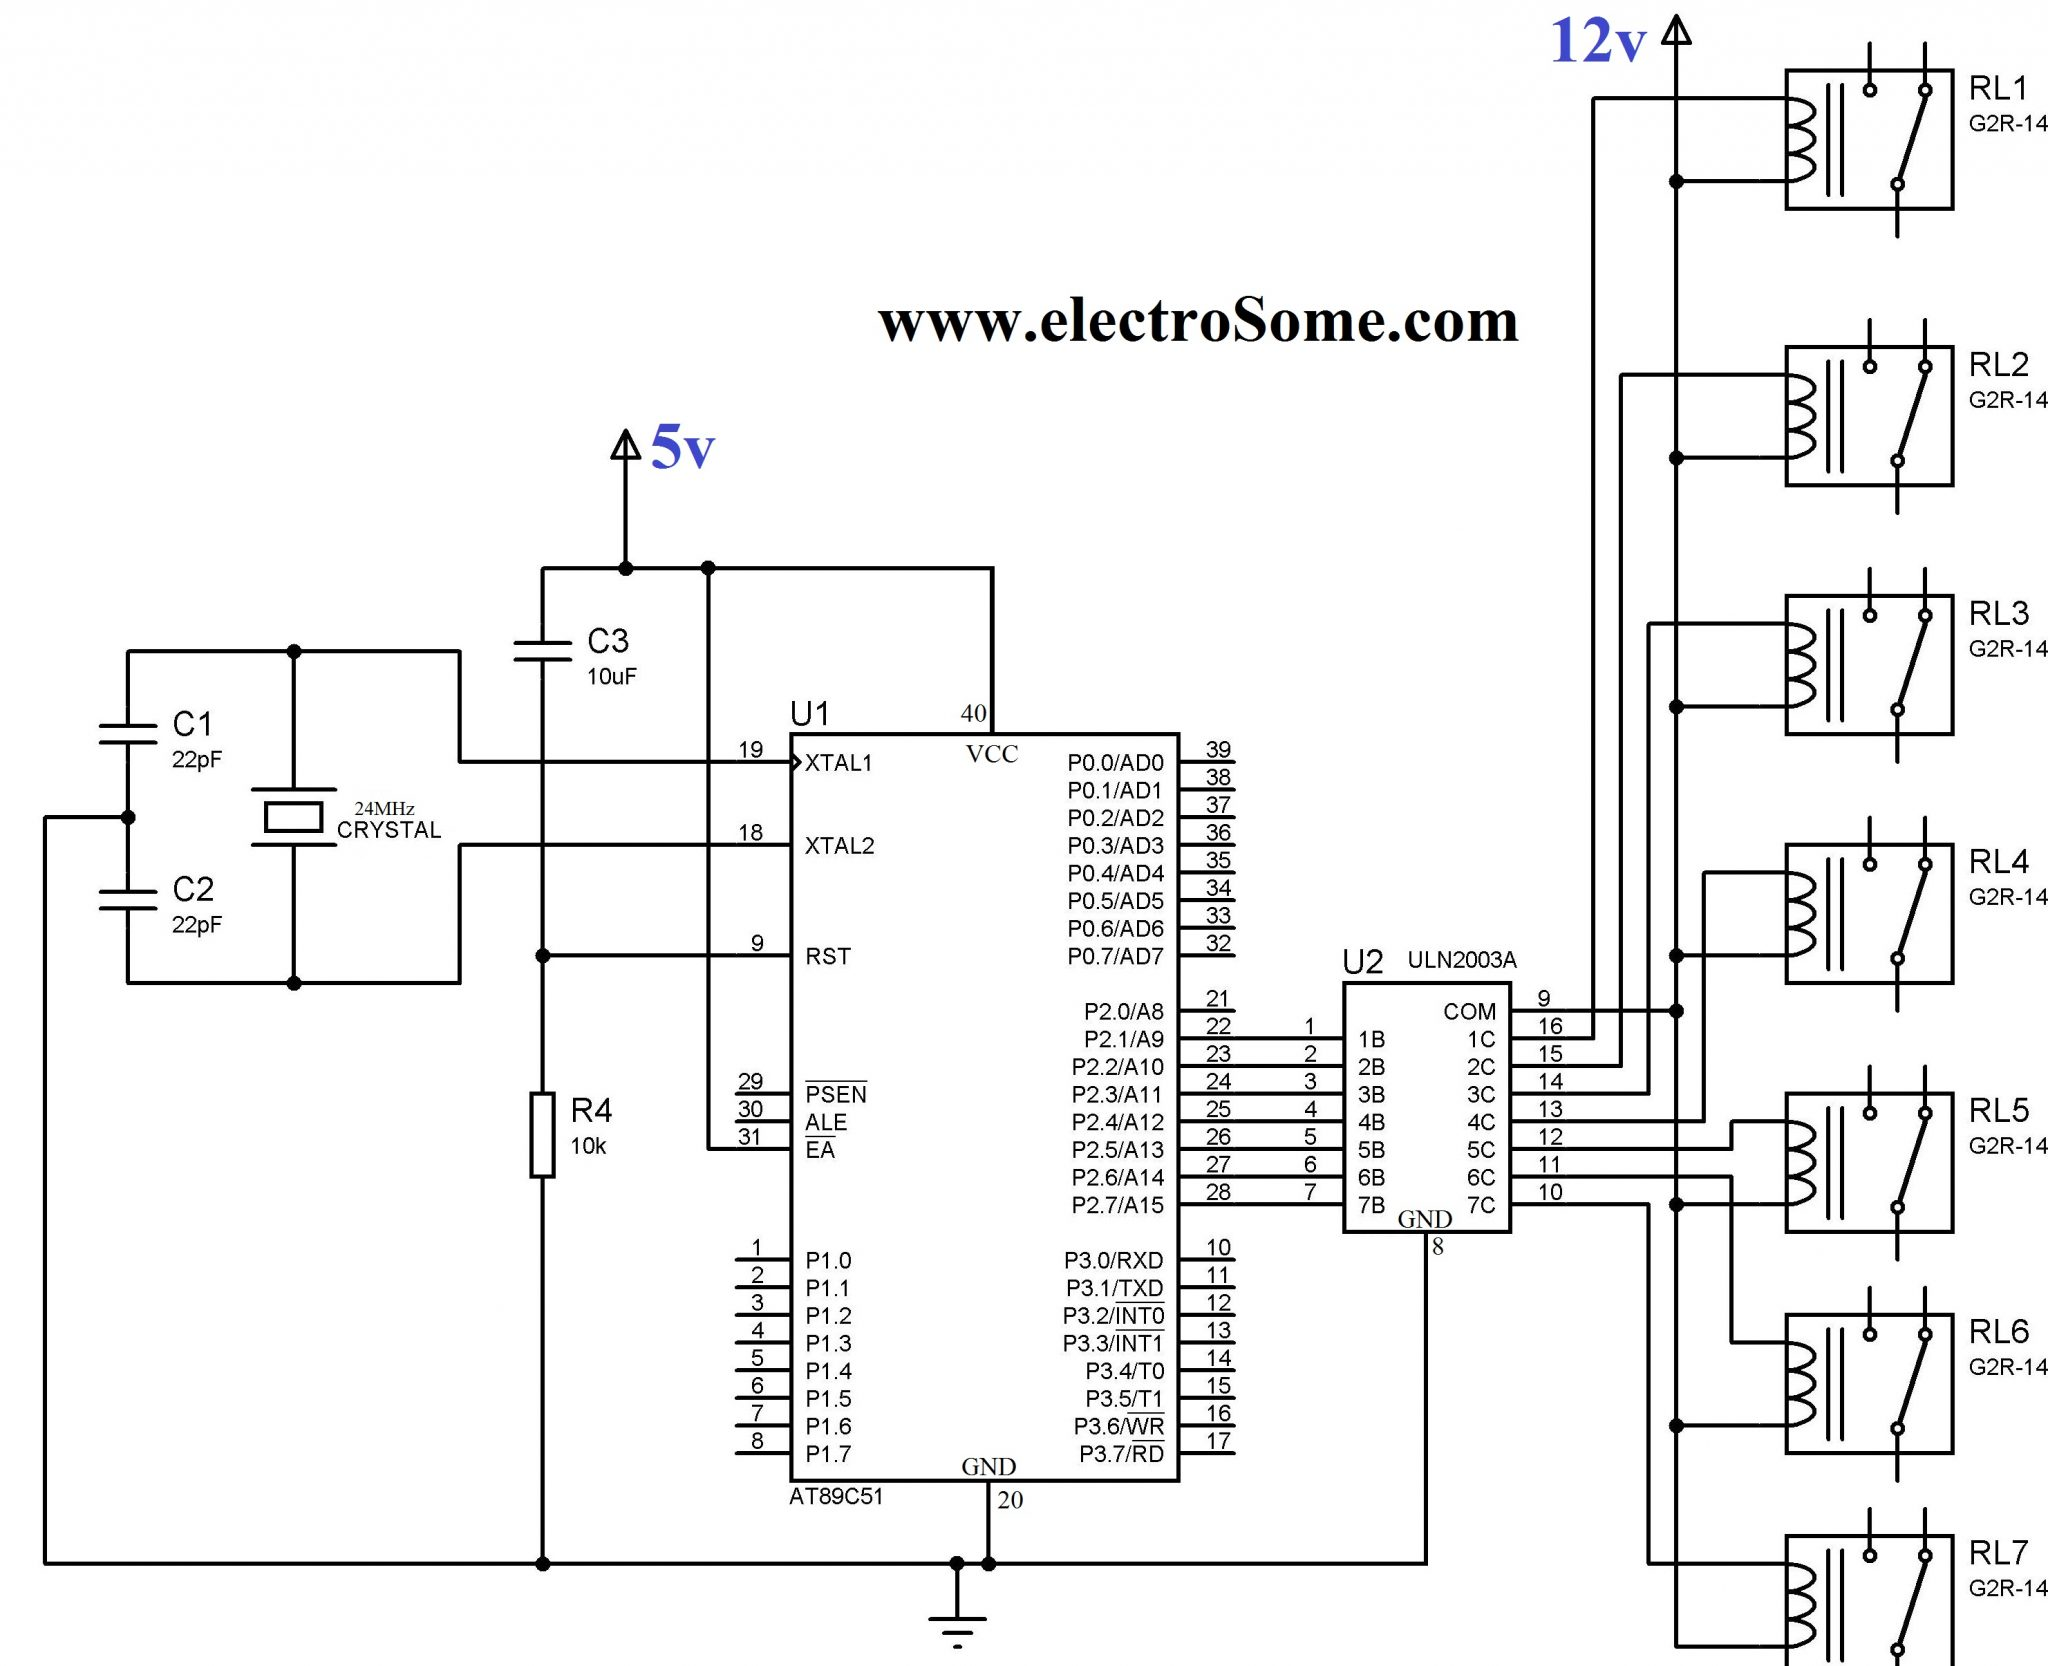 Interfacing Relay With 8051 Using Keil C At89c51 Stepper Motor Driver Pcb Circuit Basiccircuit Diagram Uln2003